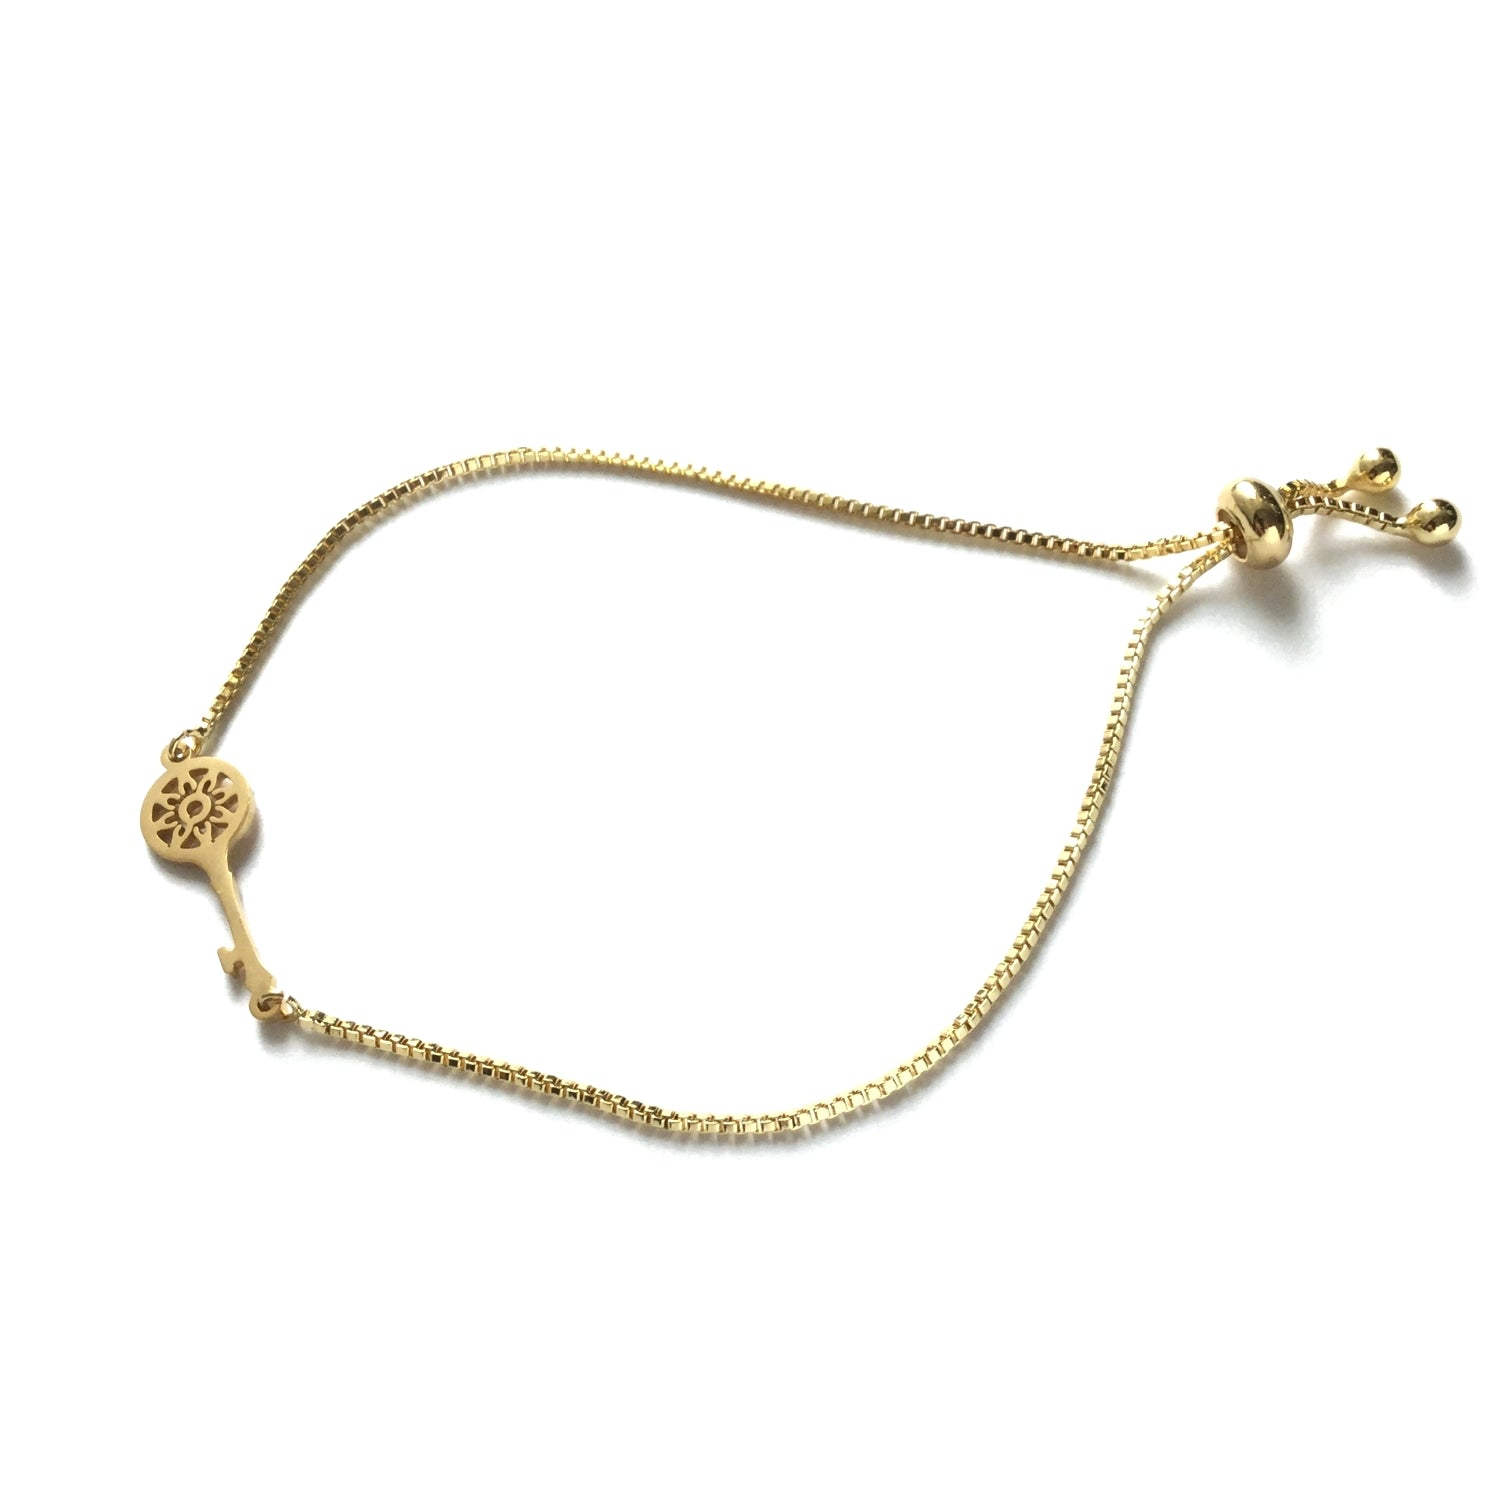 Gold stainless steel key on an adjustable gold stainless steel box chain bracelet